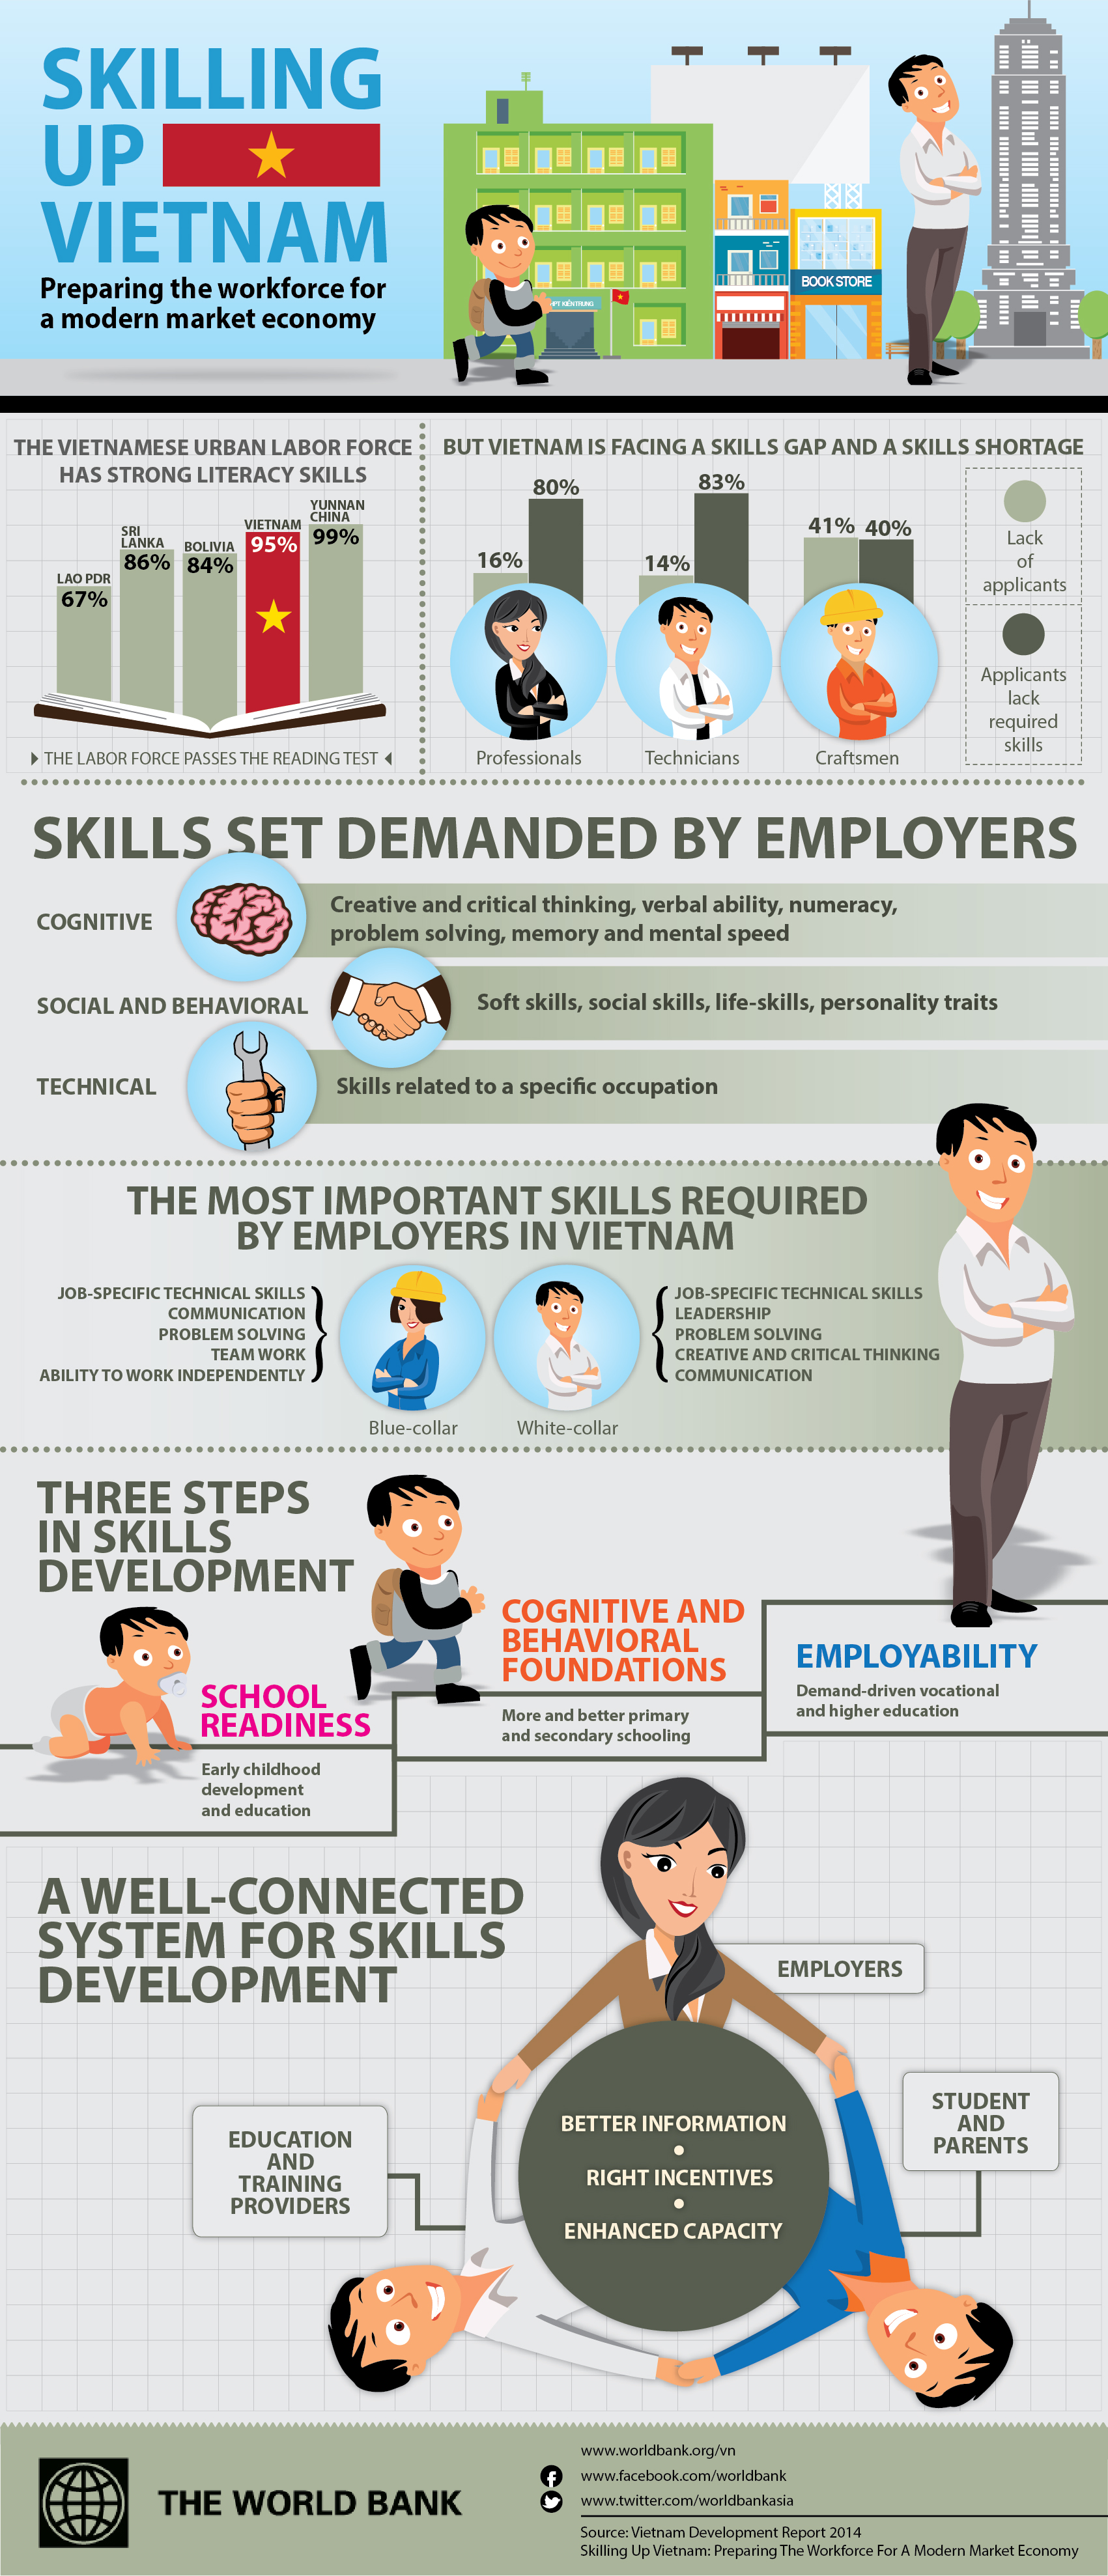 Infographic Skilling Up Vietnam Preparing The Workforce